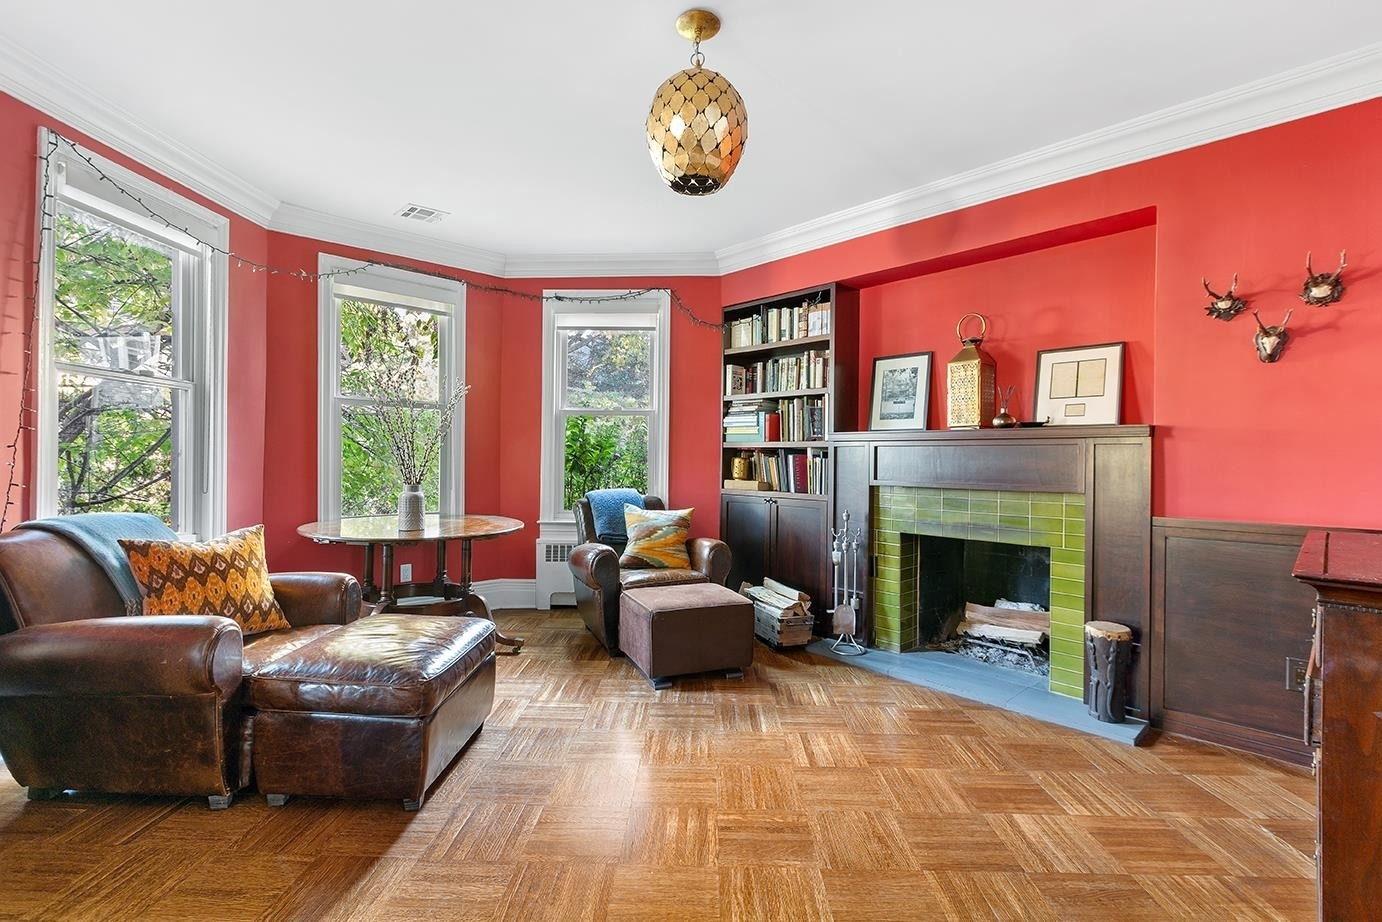 4. Single Family Townhouse for Sale at Ditmas Park, Brooklyn, NY 11218